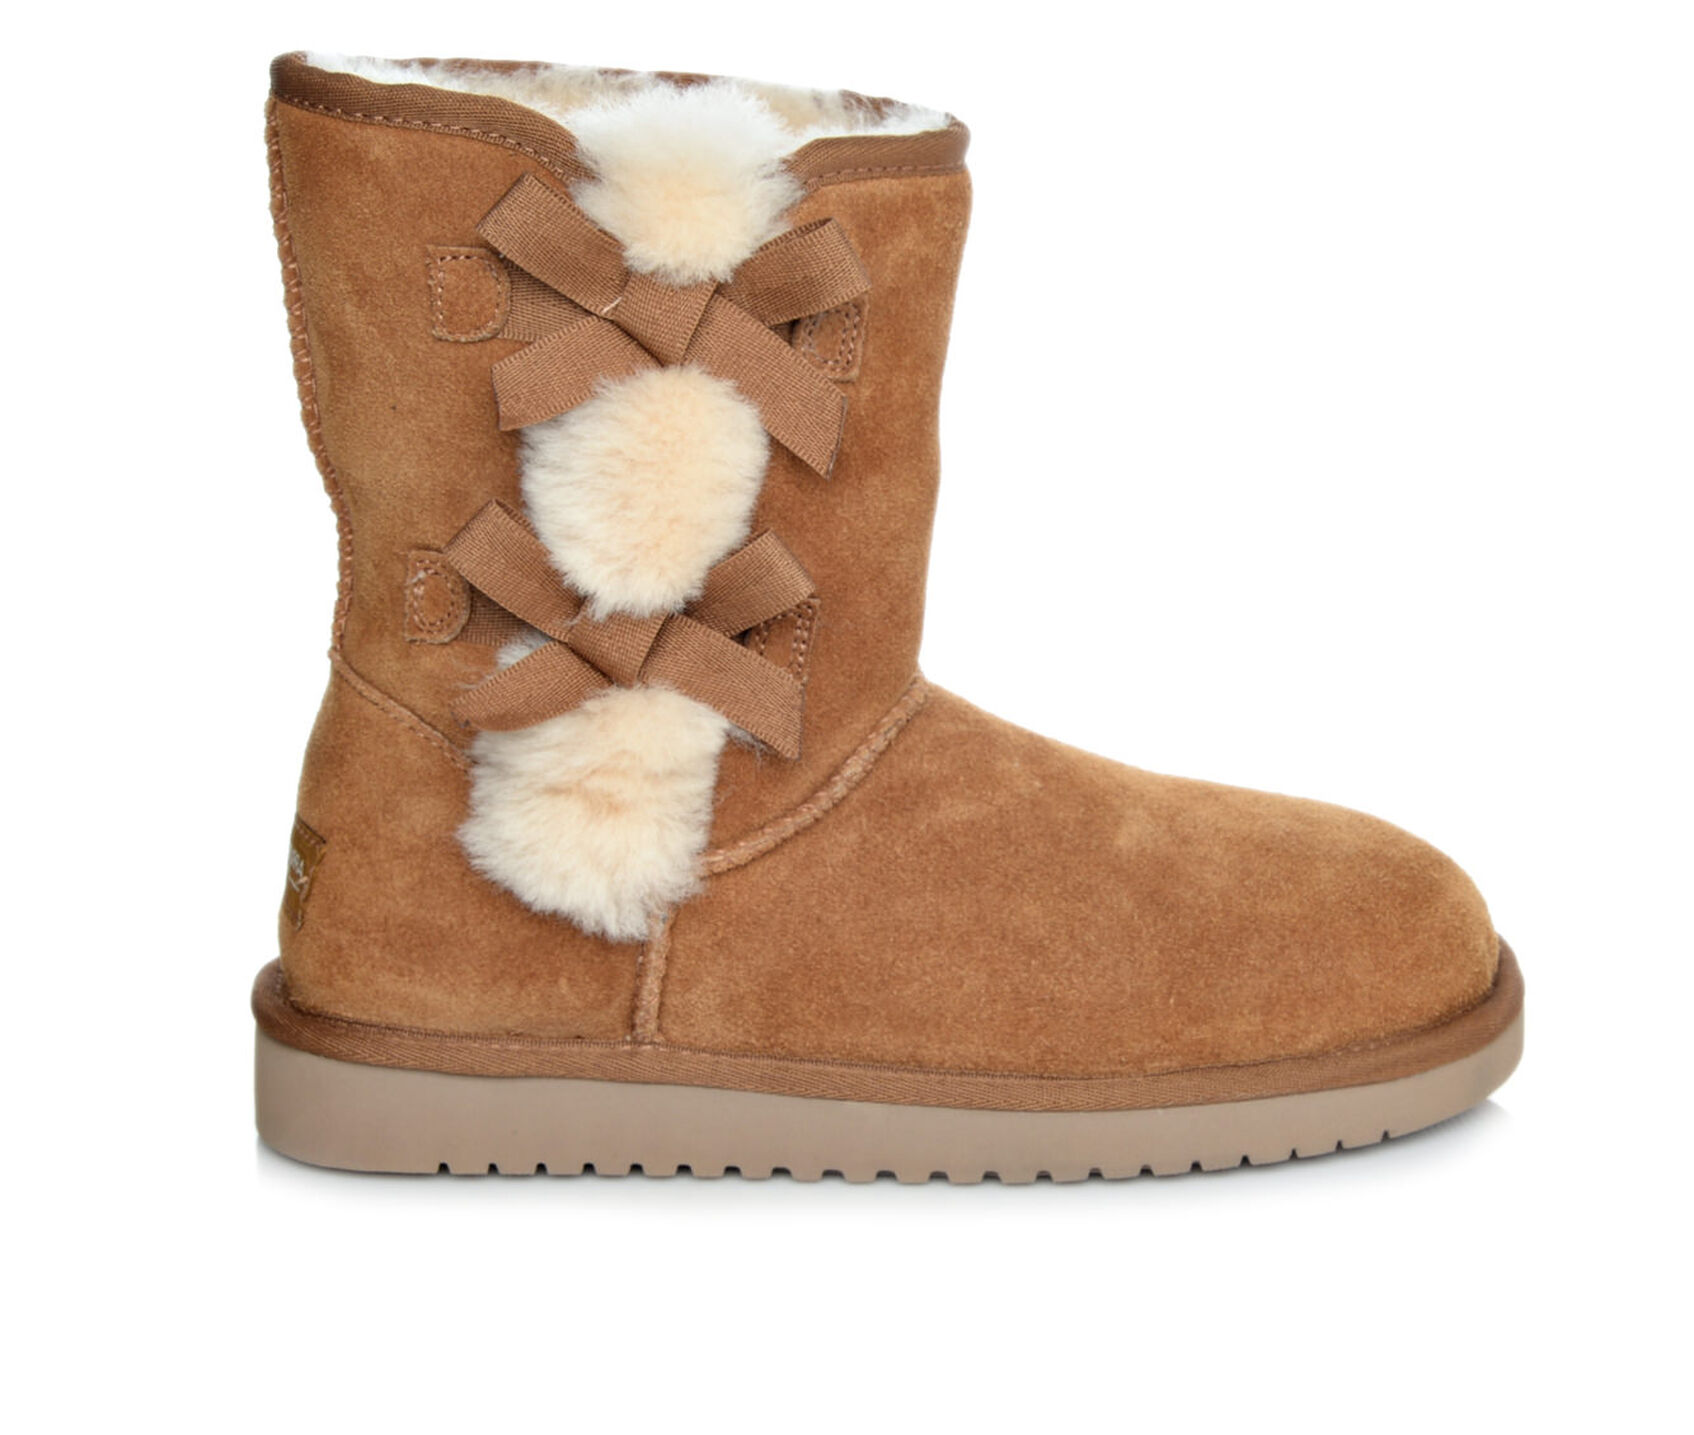 5027b095b69 Women's Koolaburra by UGG Victoria Short Boots